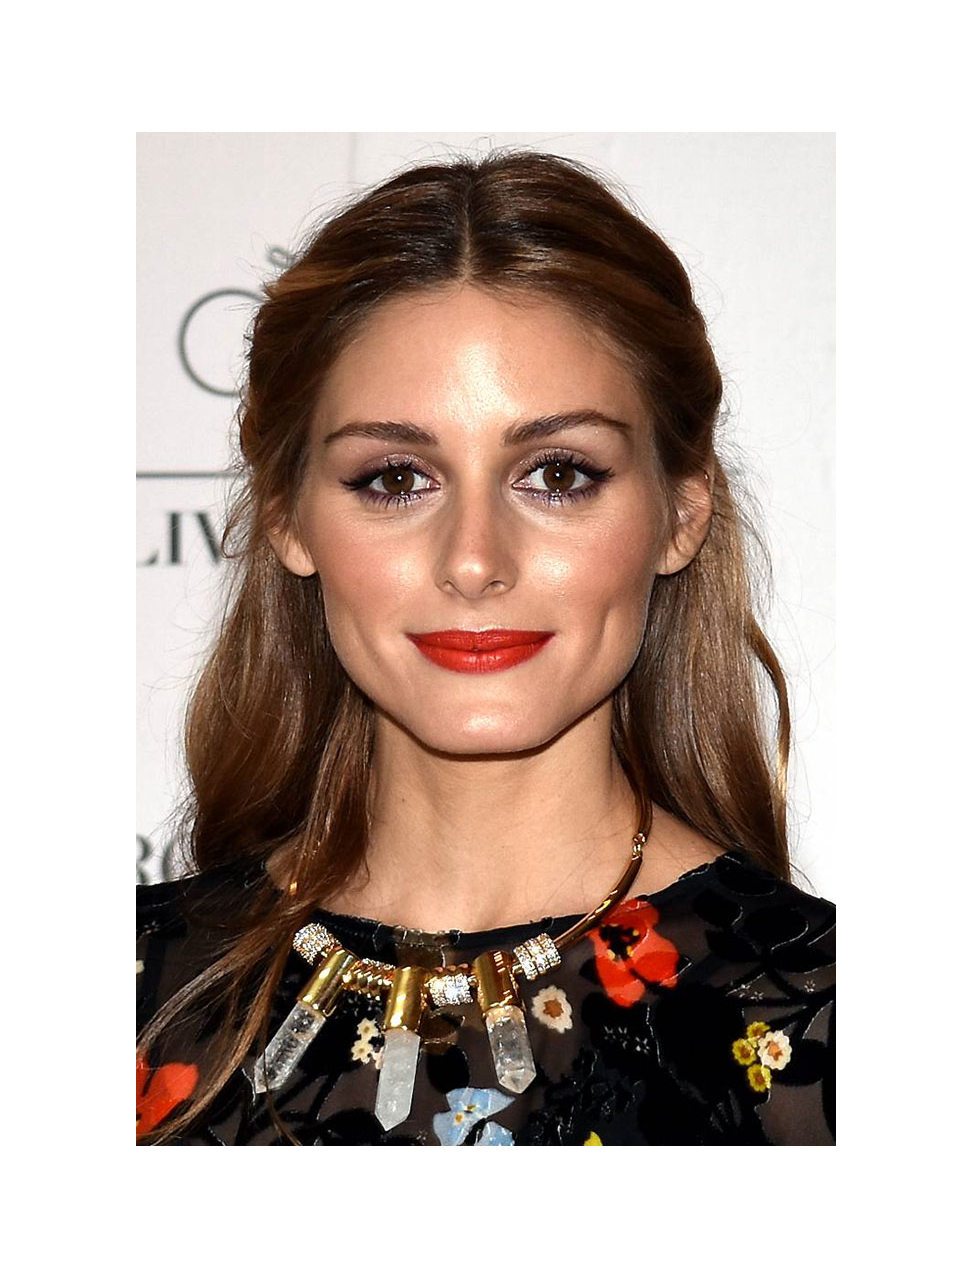 Olivia-Palermo-hair-makeup-Ciate-London-Makeup-collection.jpg